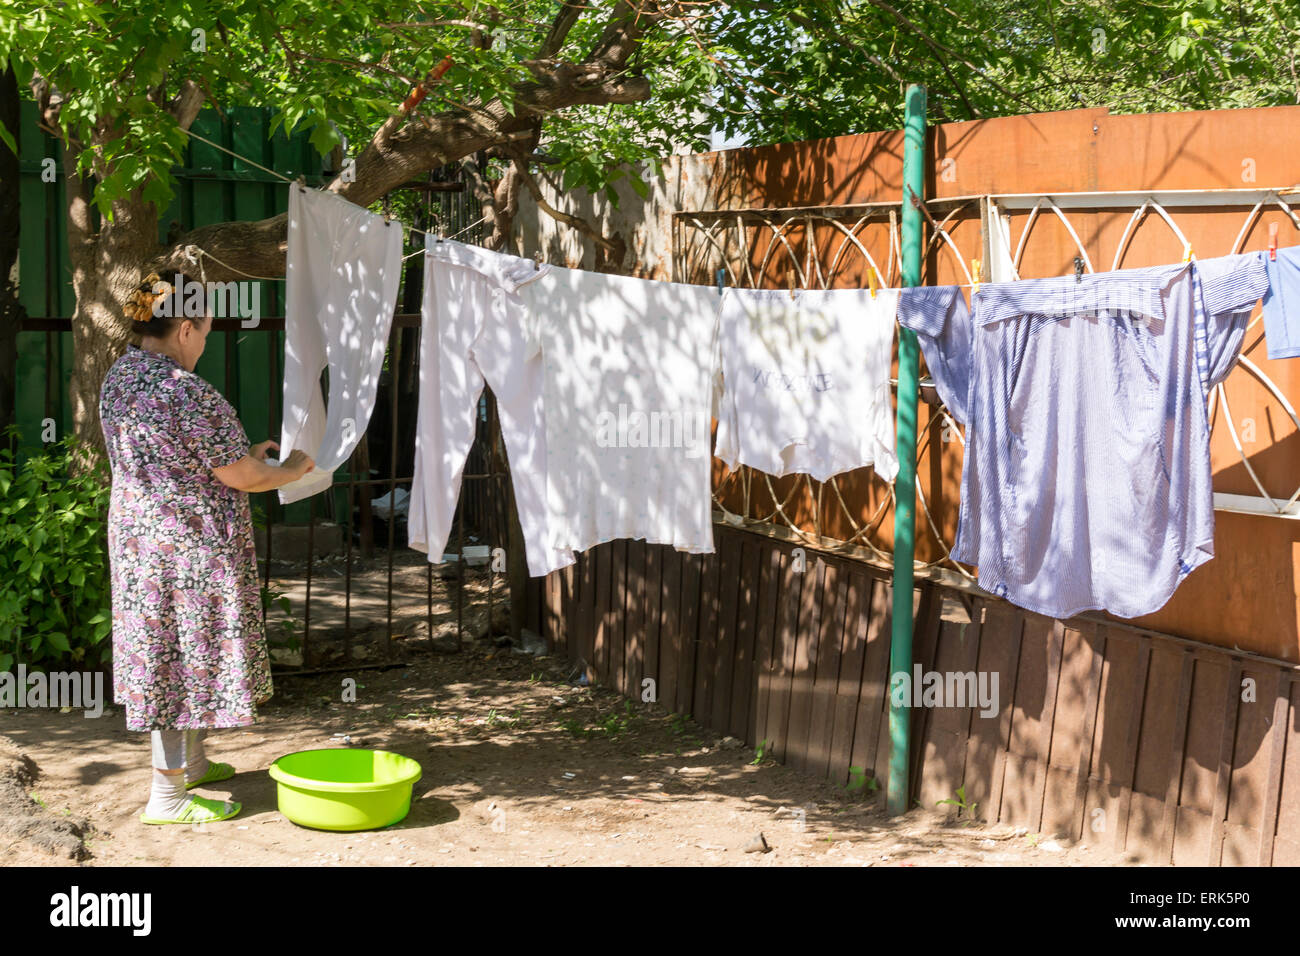 Old pensioner woman making the most of a hot summer hanging up her washing in Ufa Russia - Stock Image